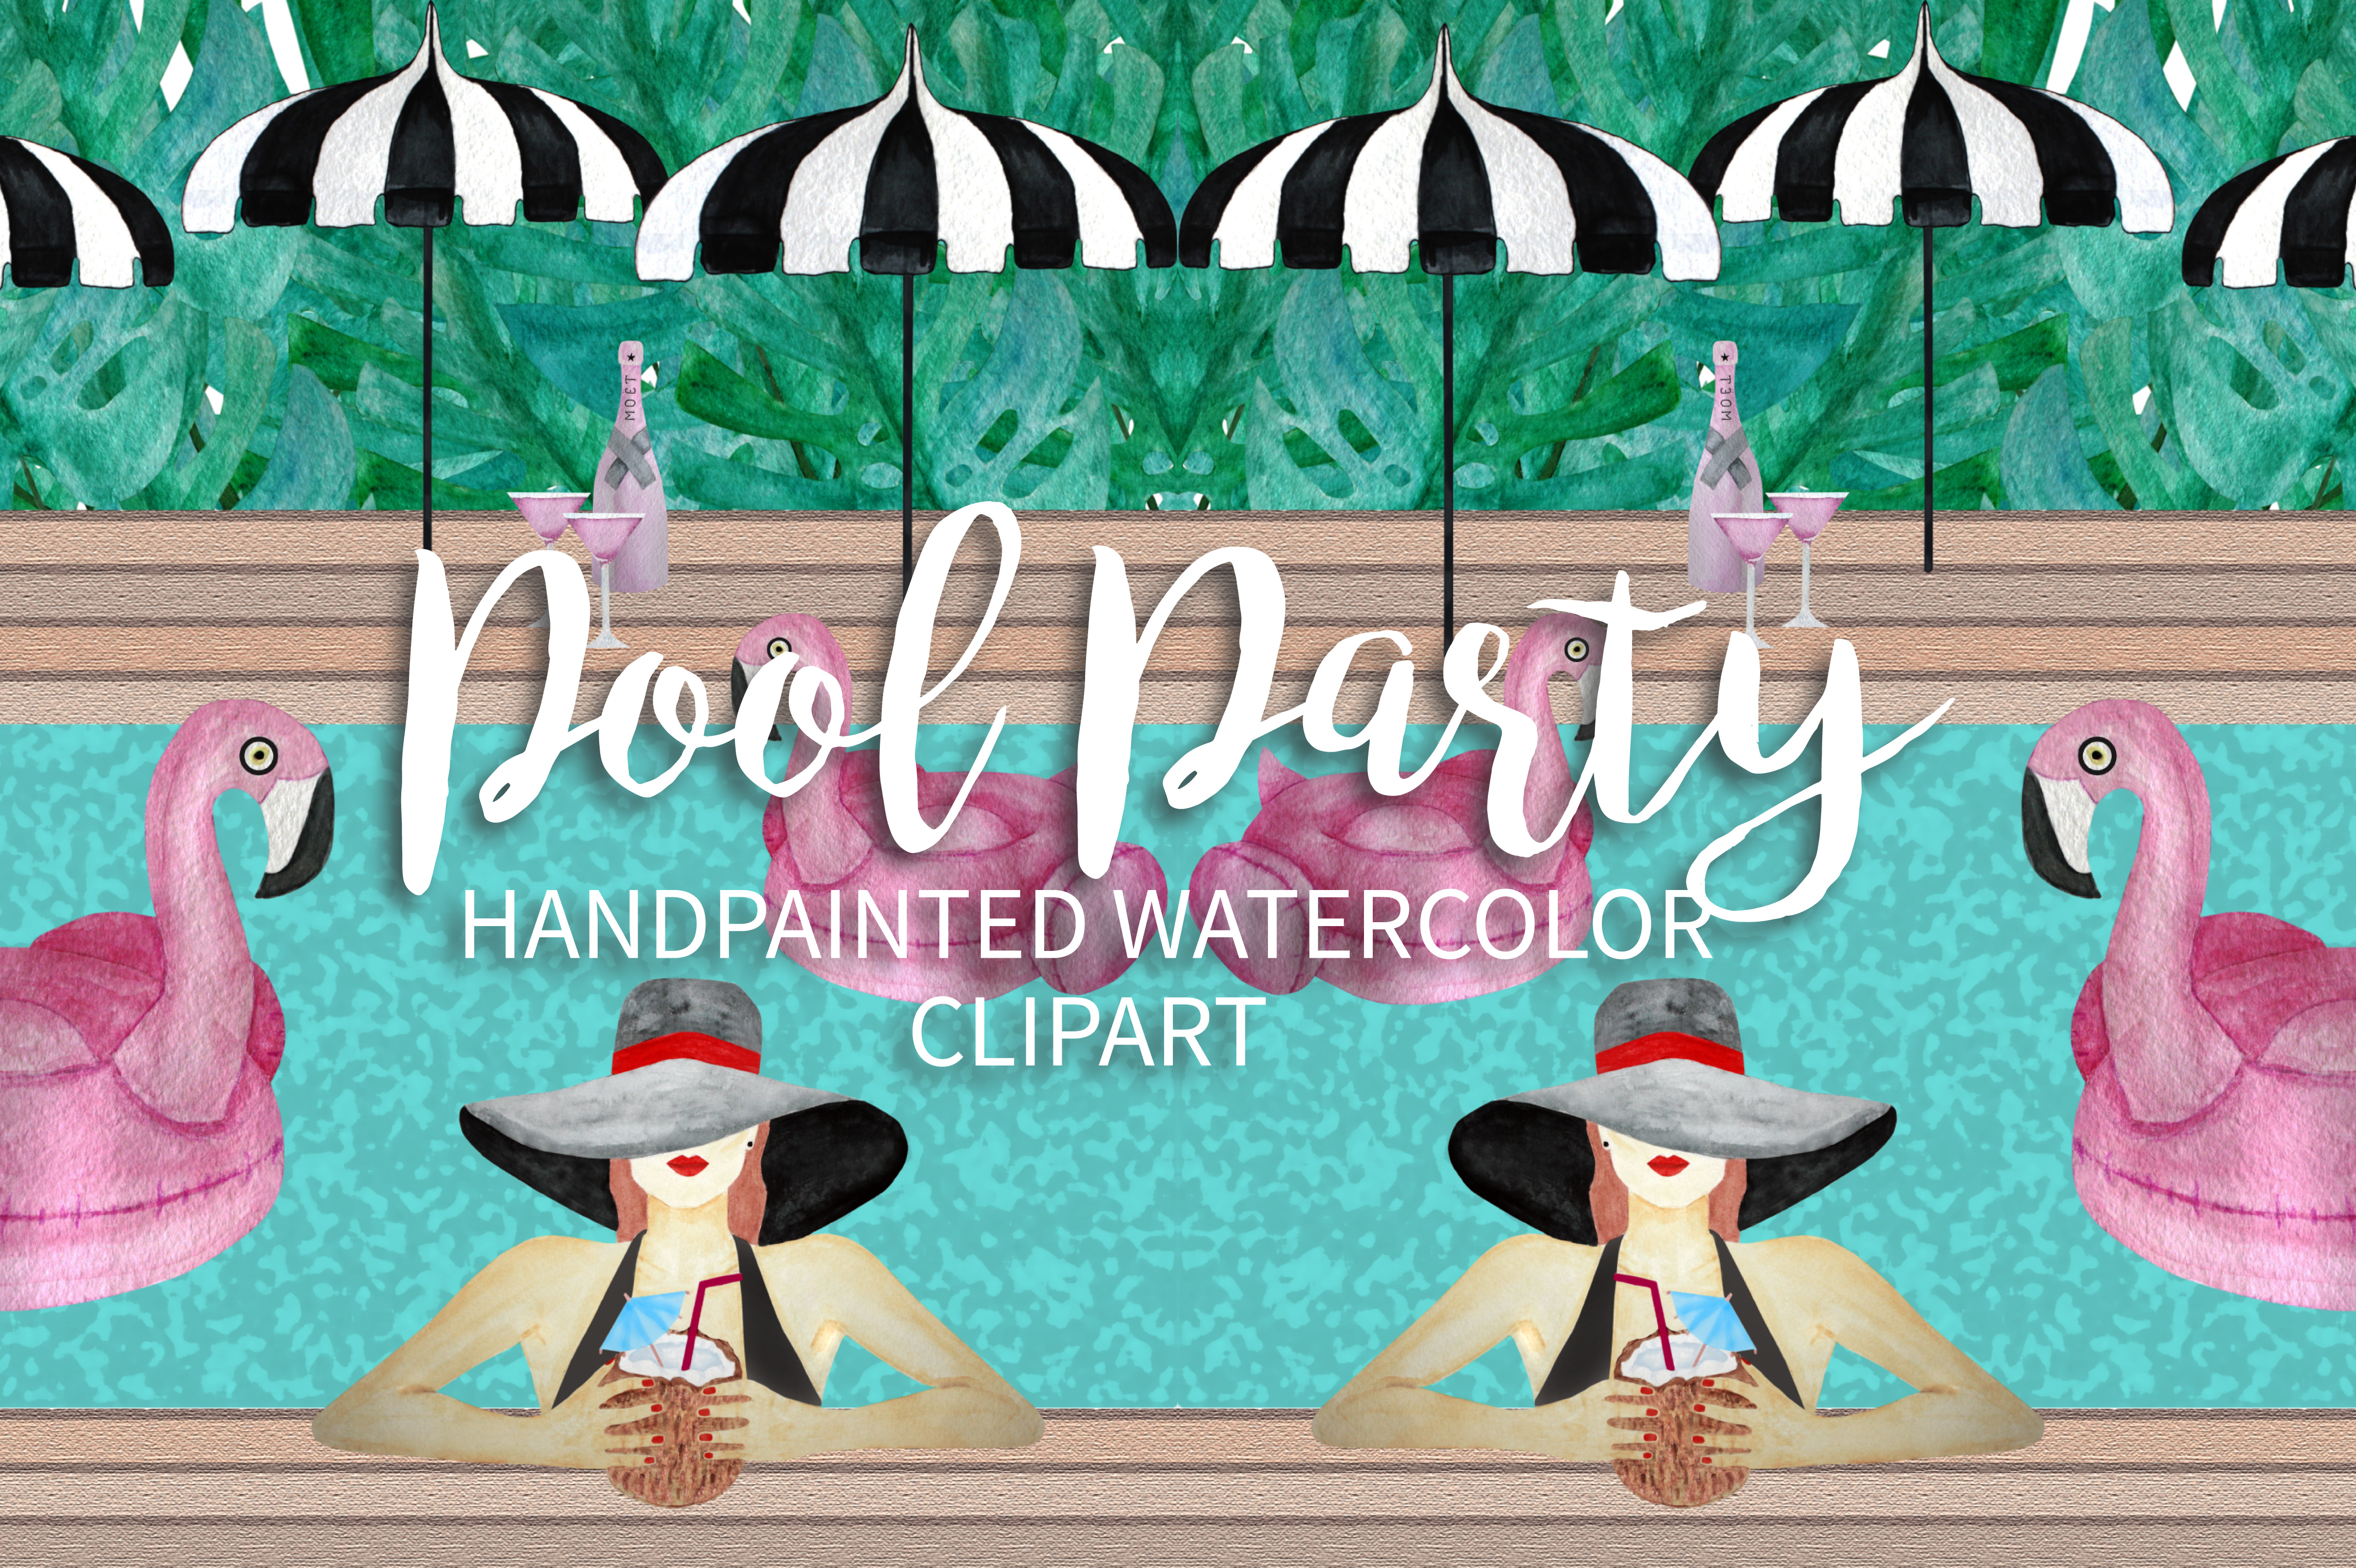 Pool Party Watercolor Clipart example image 4